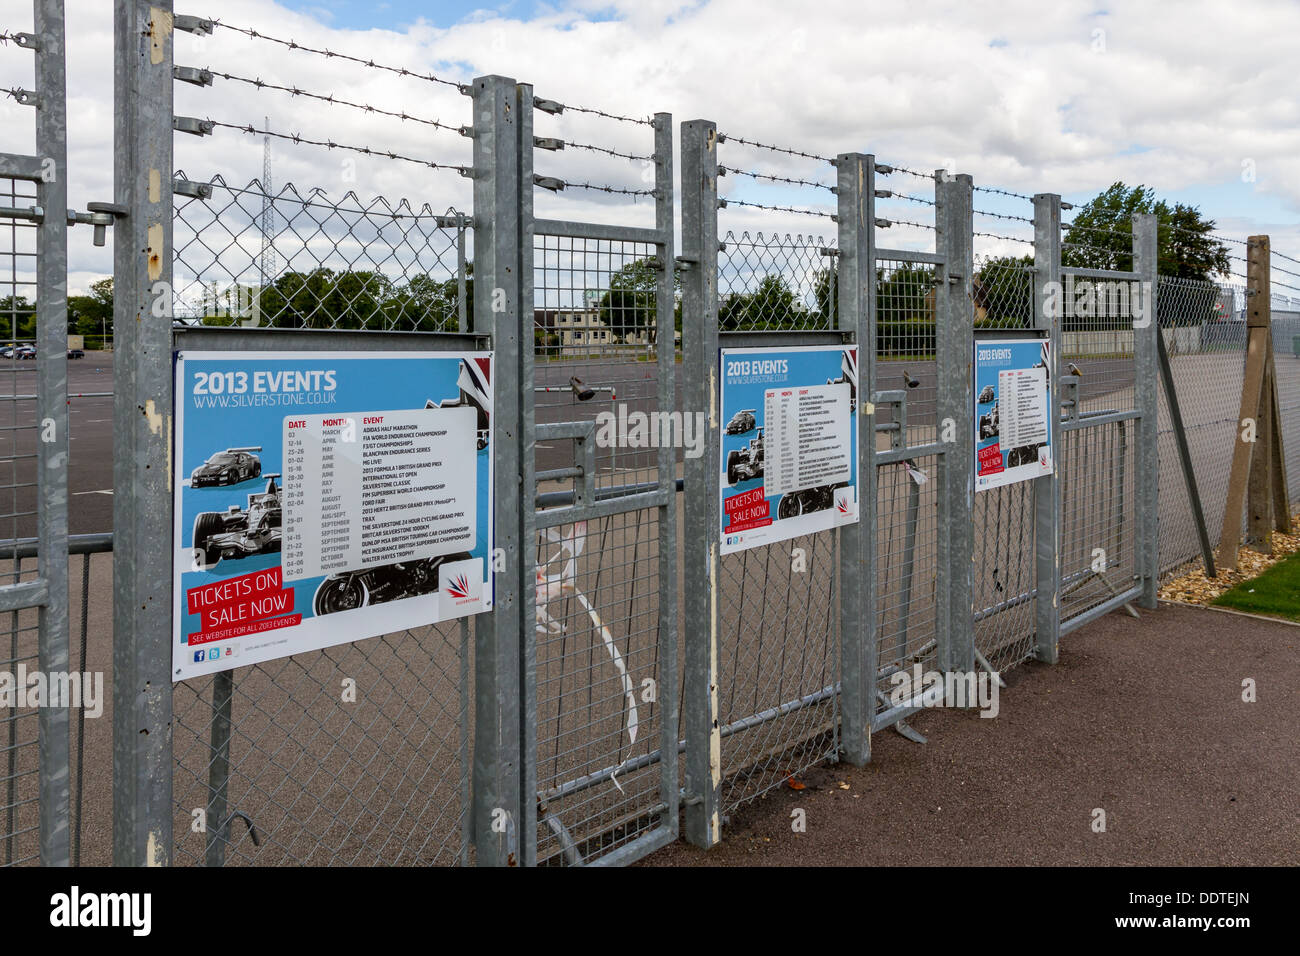 Entrance gates at Silverstone Racing Circuit. - Stock Image